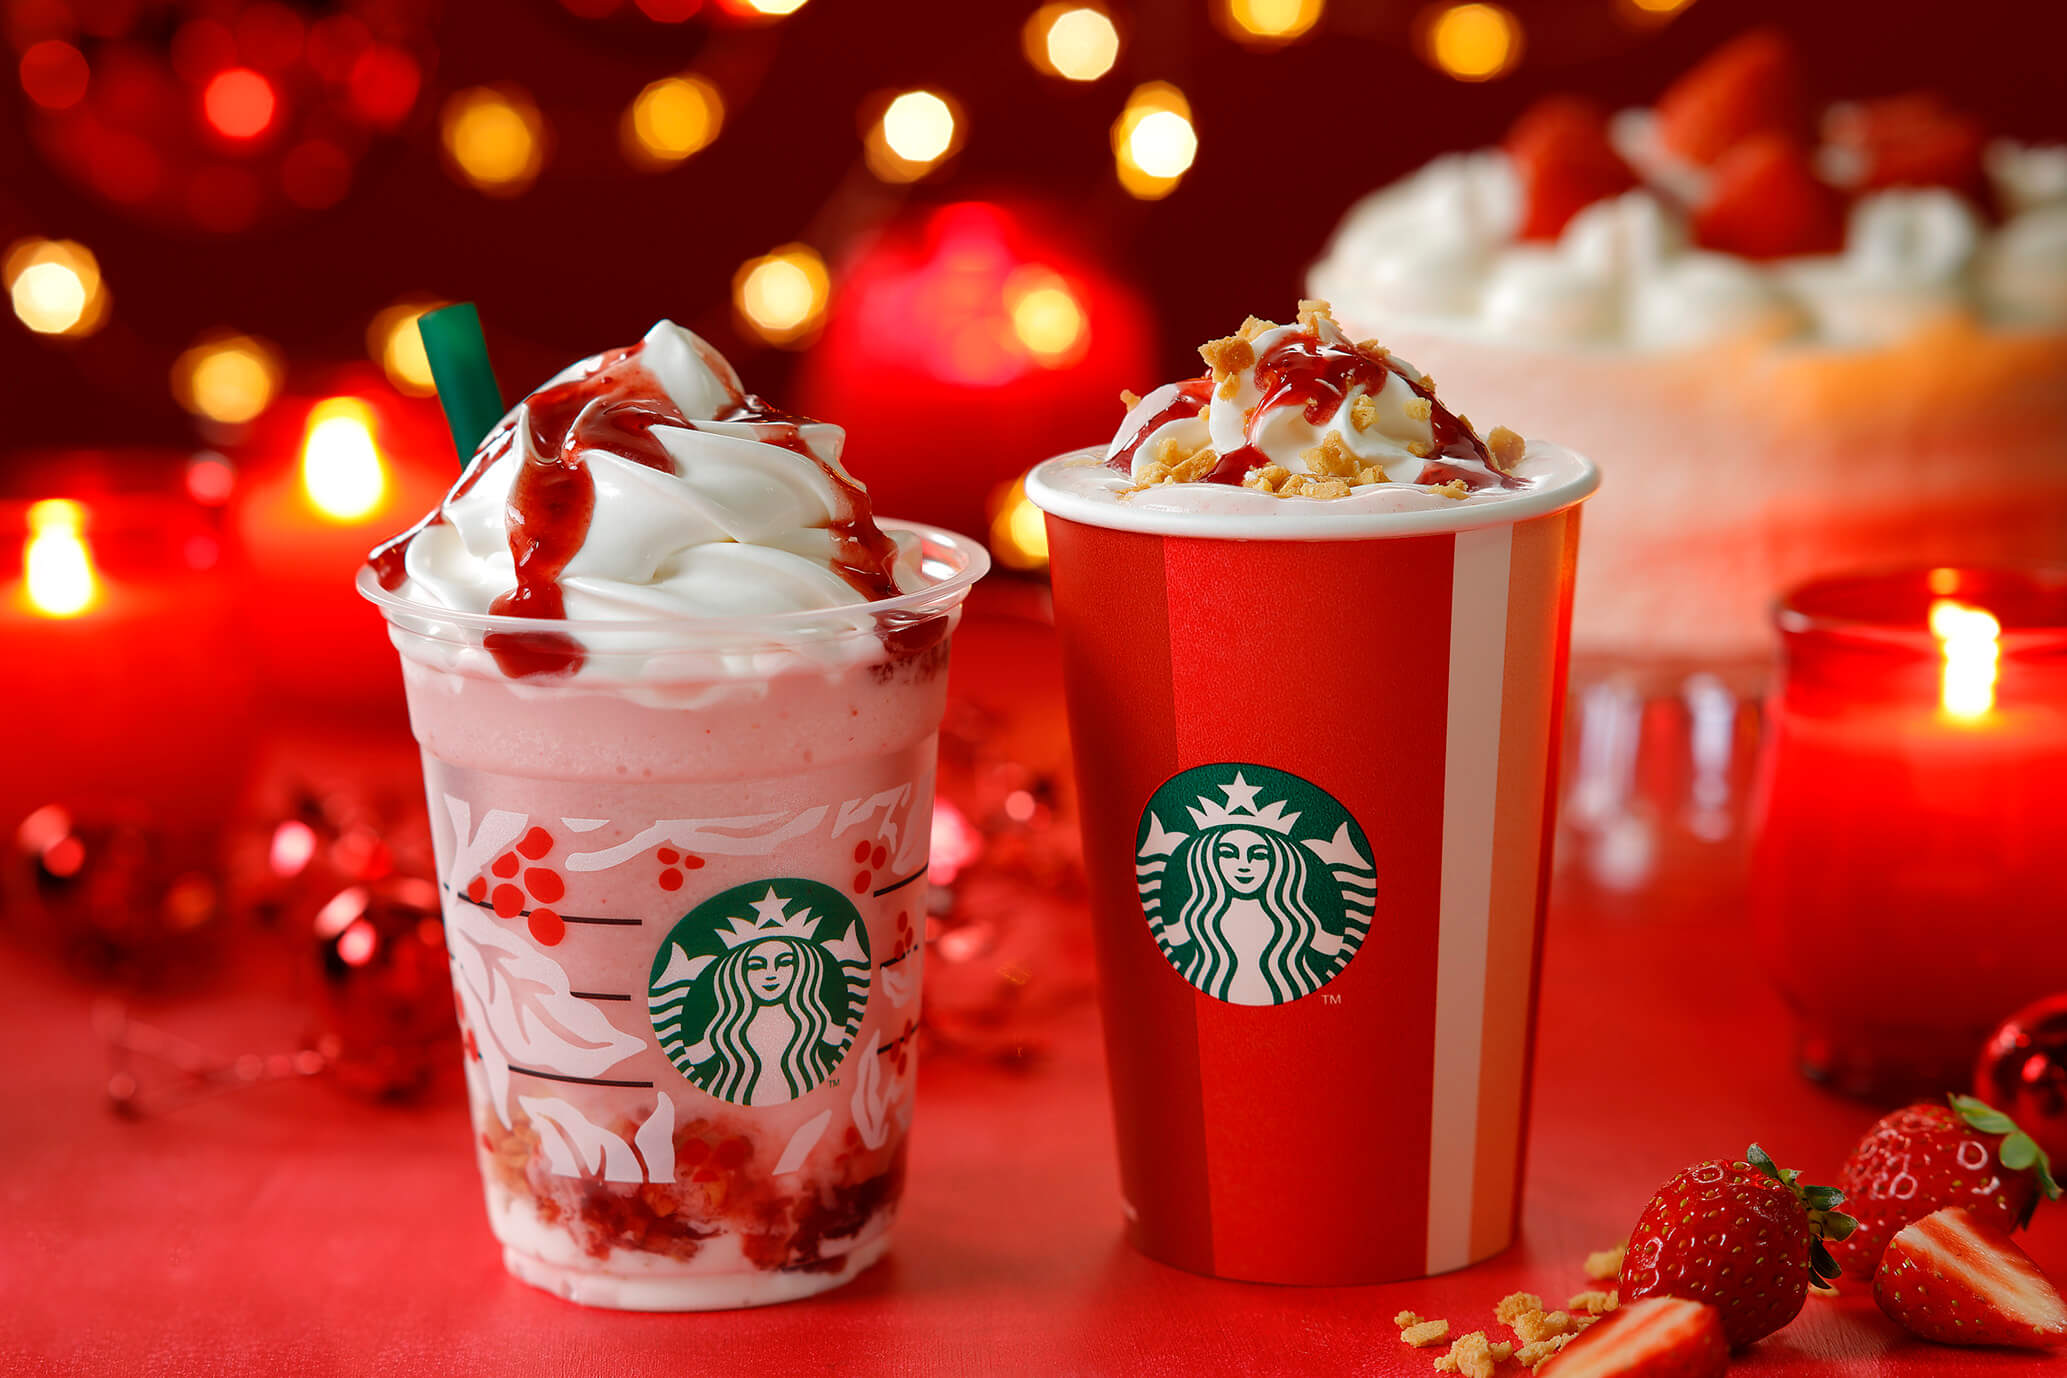 starbucks-%e6%98%9f%e5%b7%b4%e5%85%8b%e3%80%802018strawberrycake-2